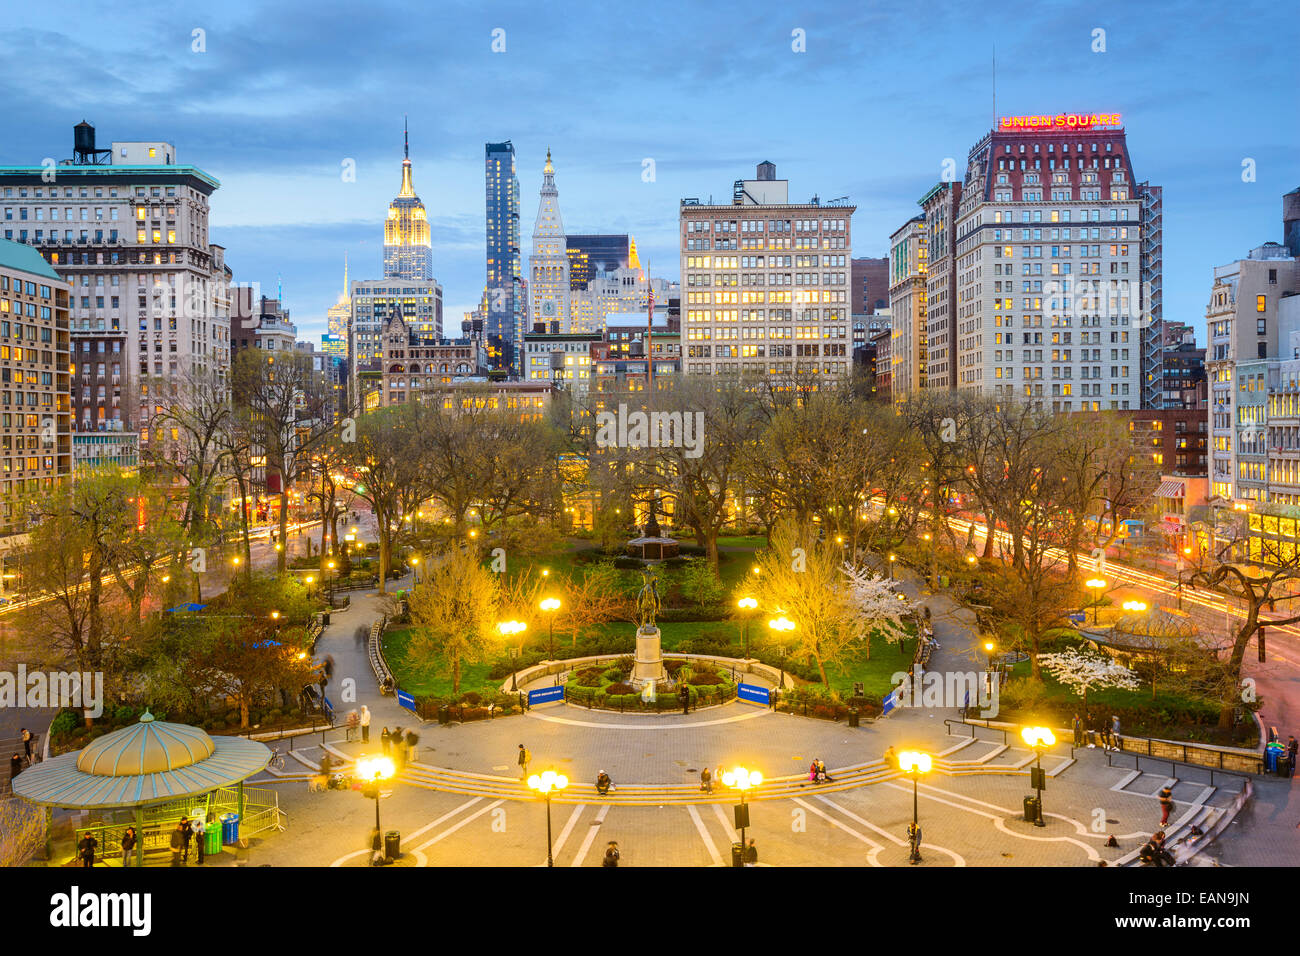 New York City, USA Stadtbild am Union Square in Manhattan. Stockbild